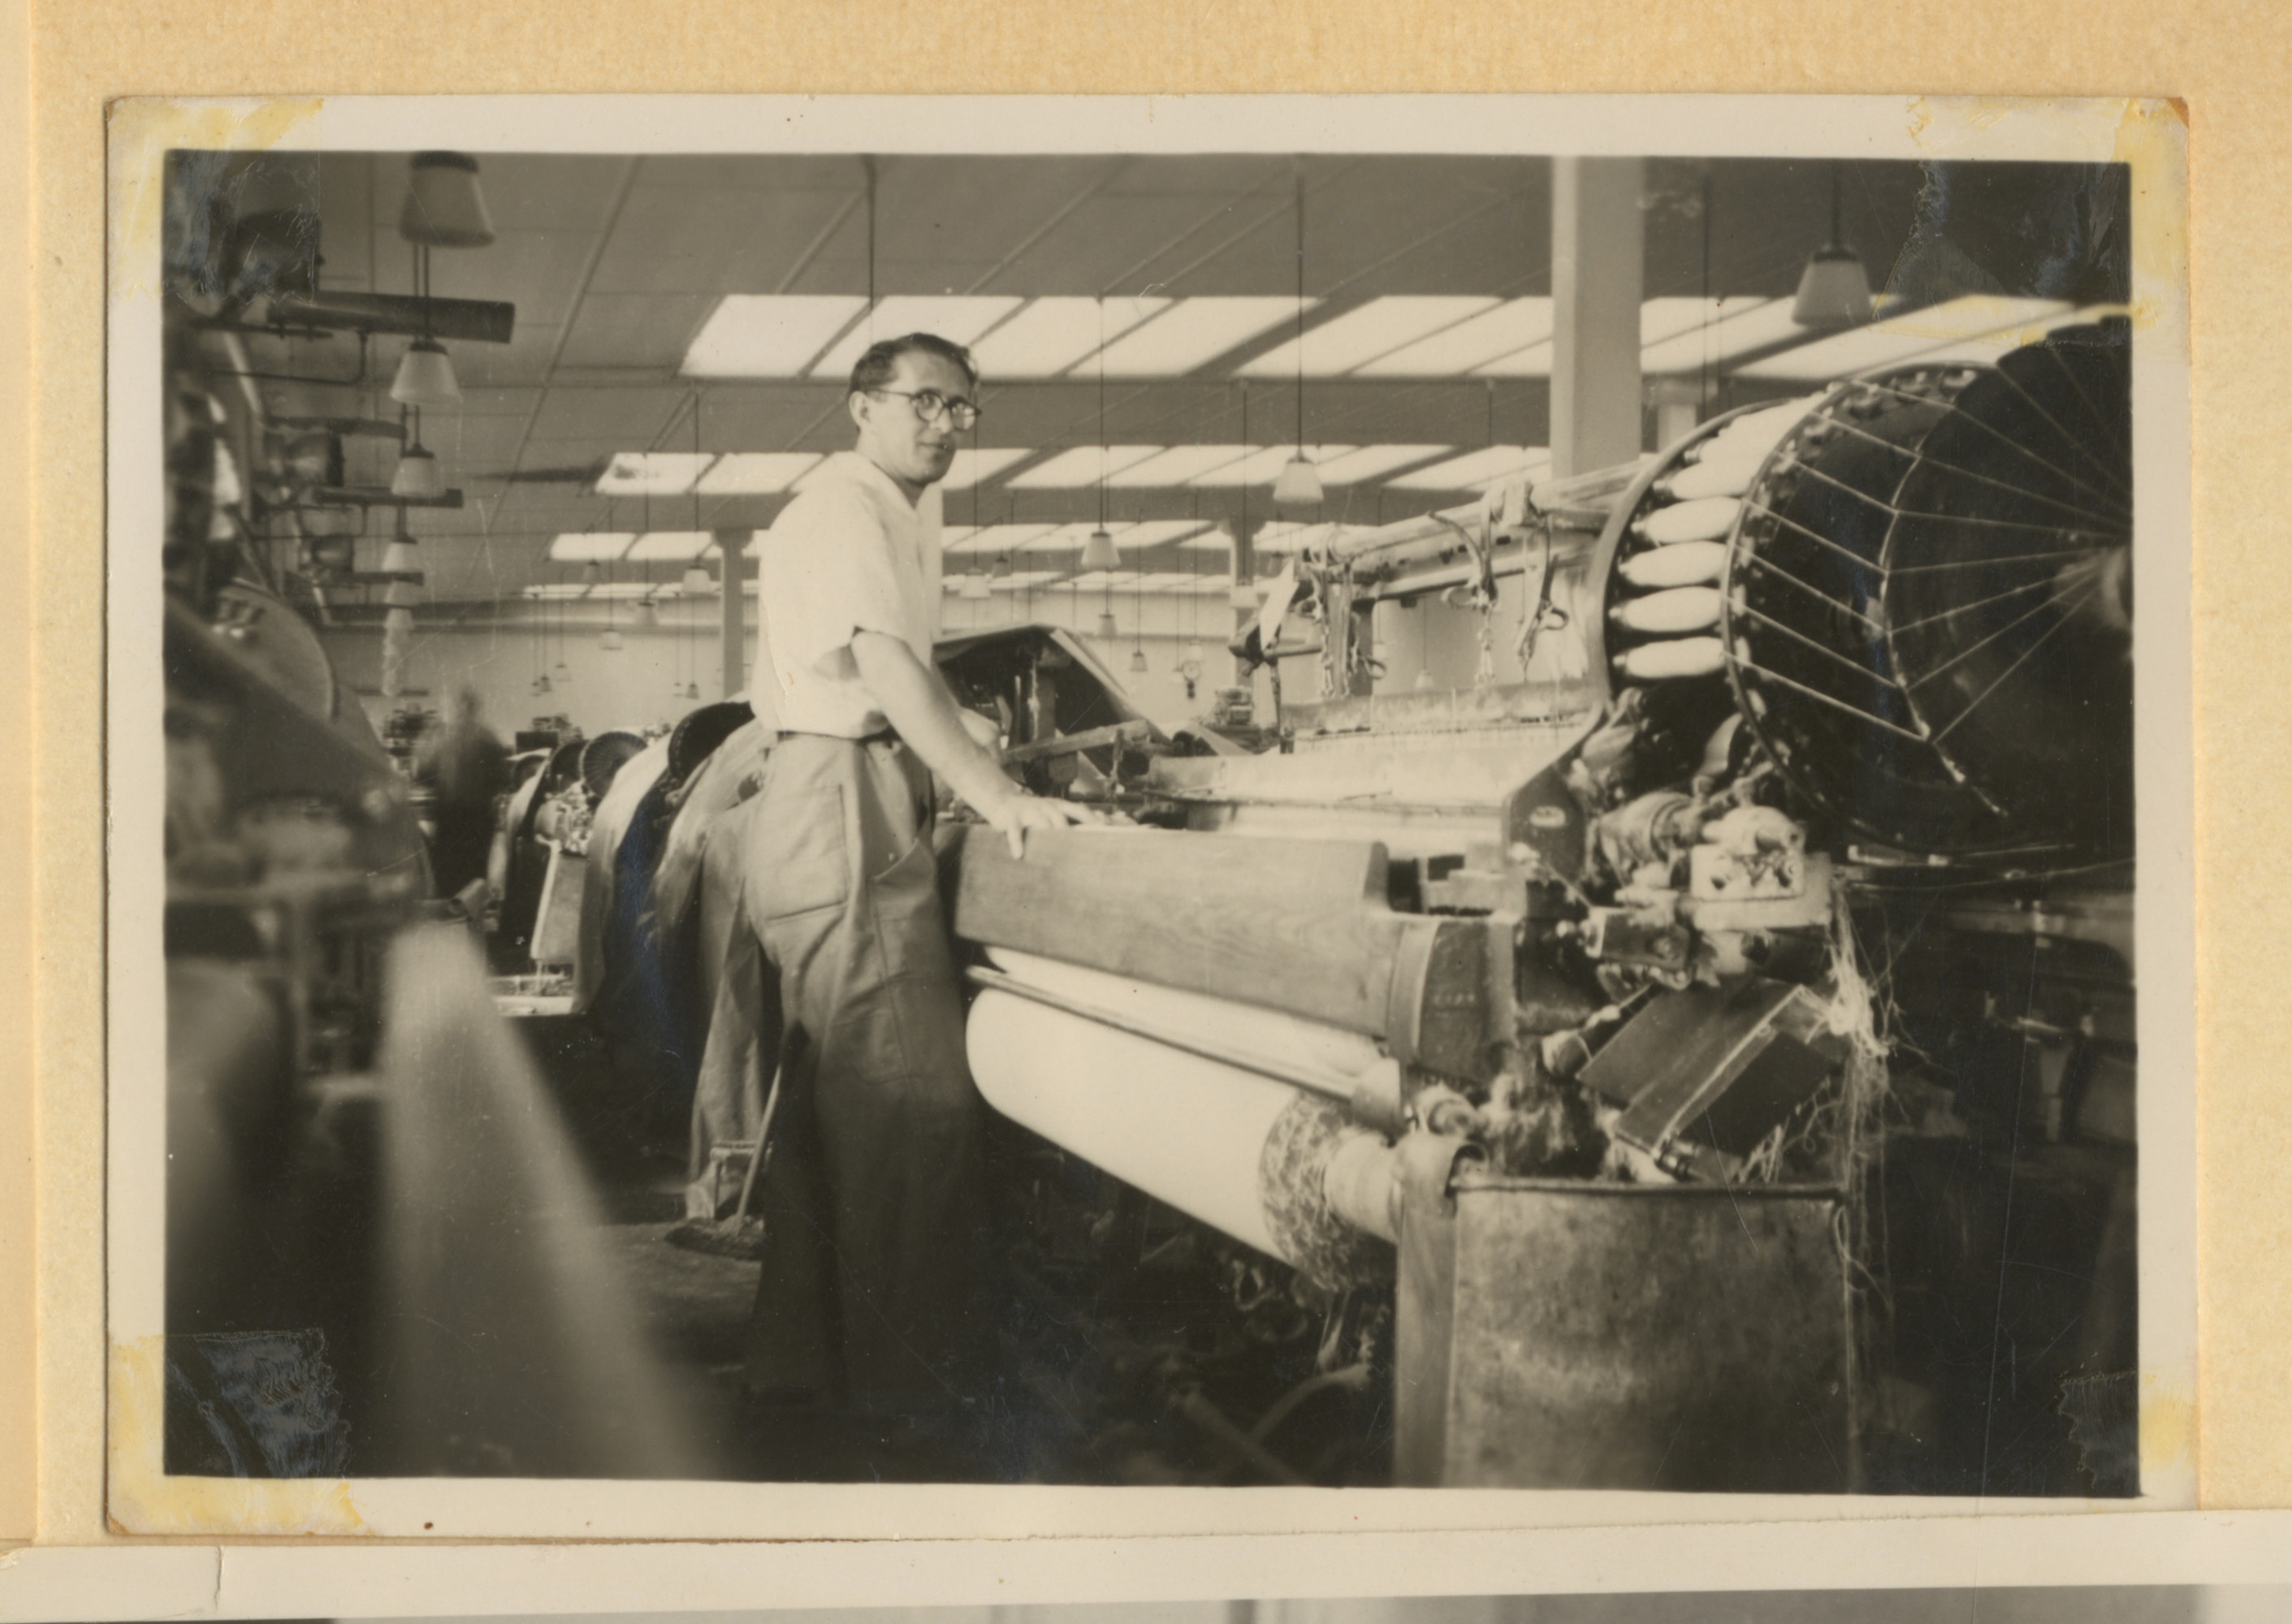 Mayer Spiro works at a textile factory, possibly in Cernauti.